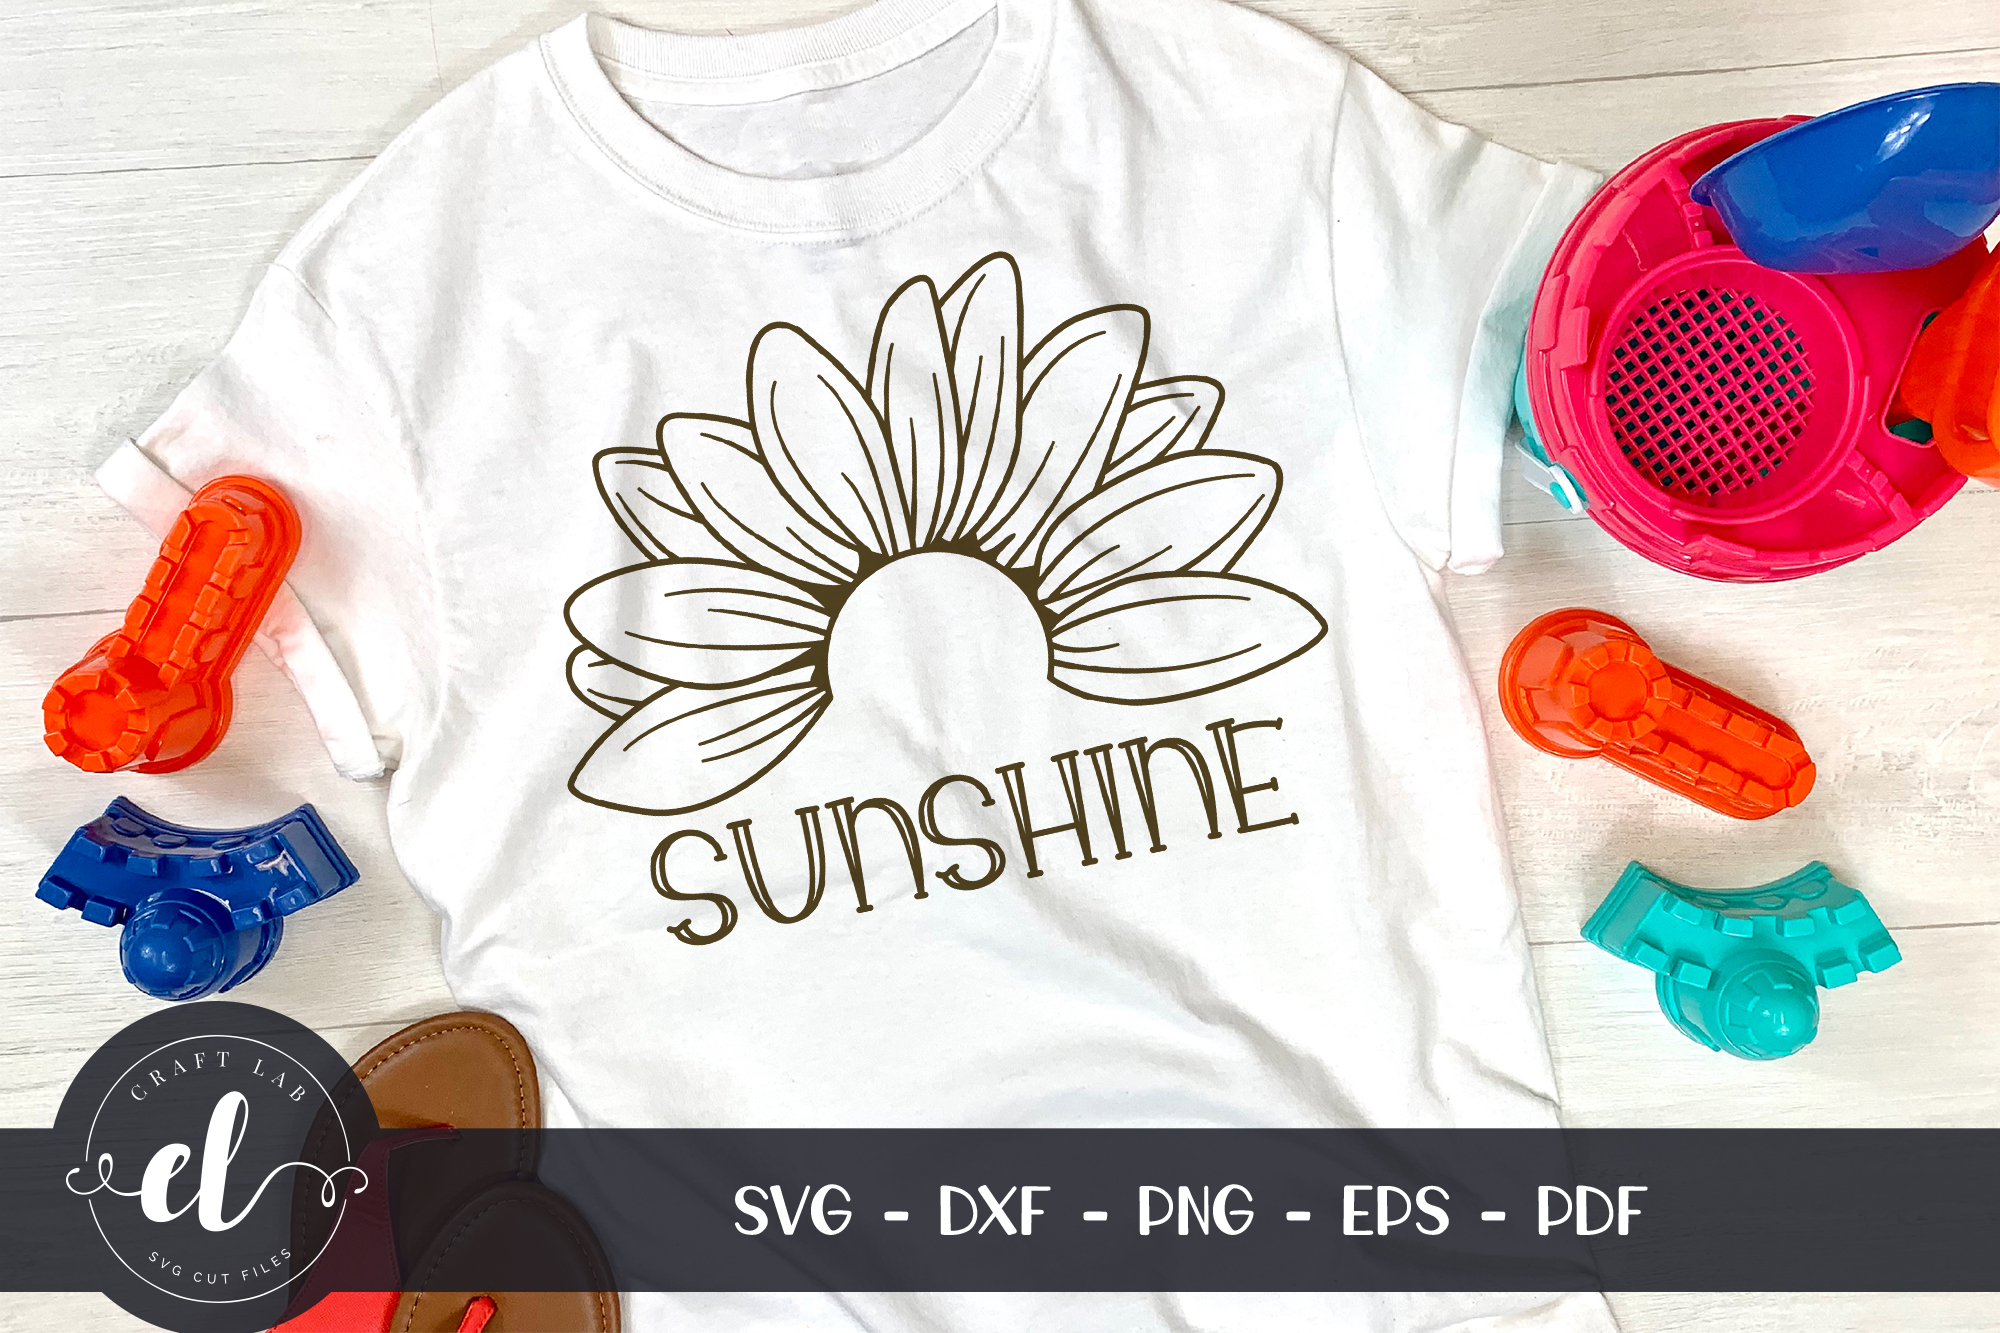 Download Free Sunflower Clipart Graphic By Craftlabsvg Creative Fabrica for Cricut Explore, Silhouette and other cutting machines.